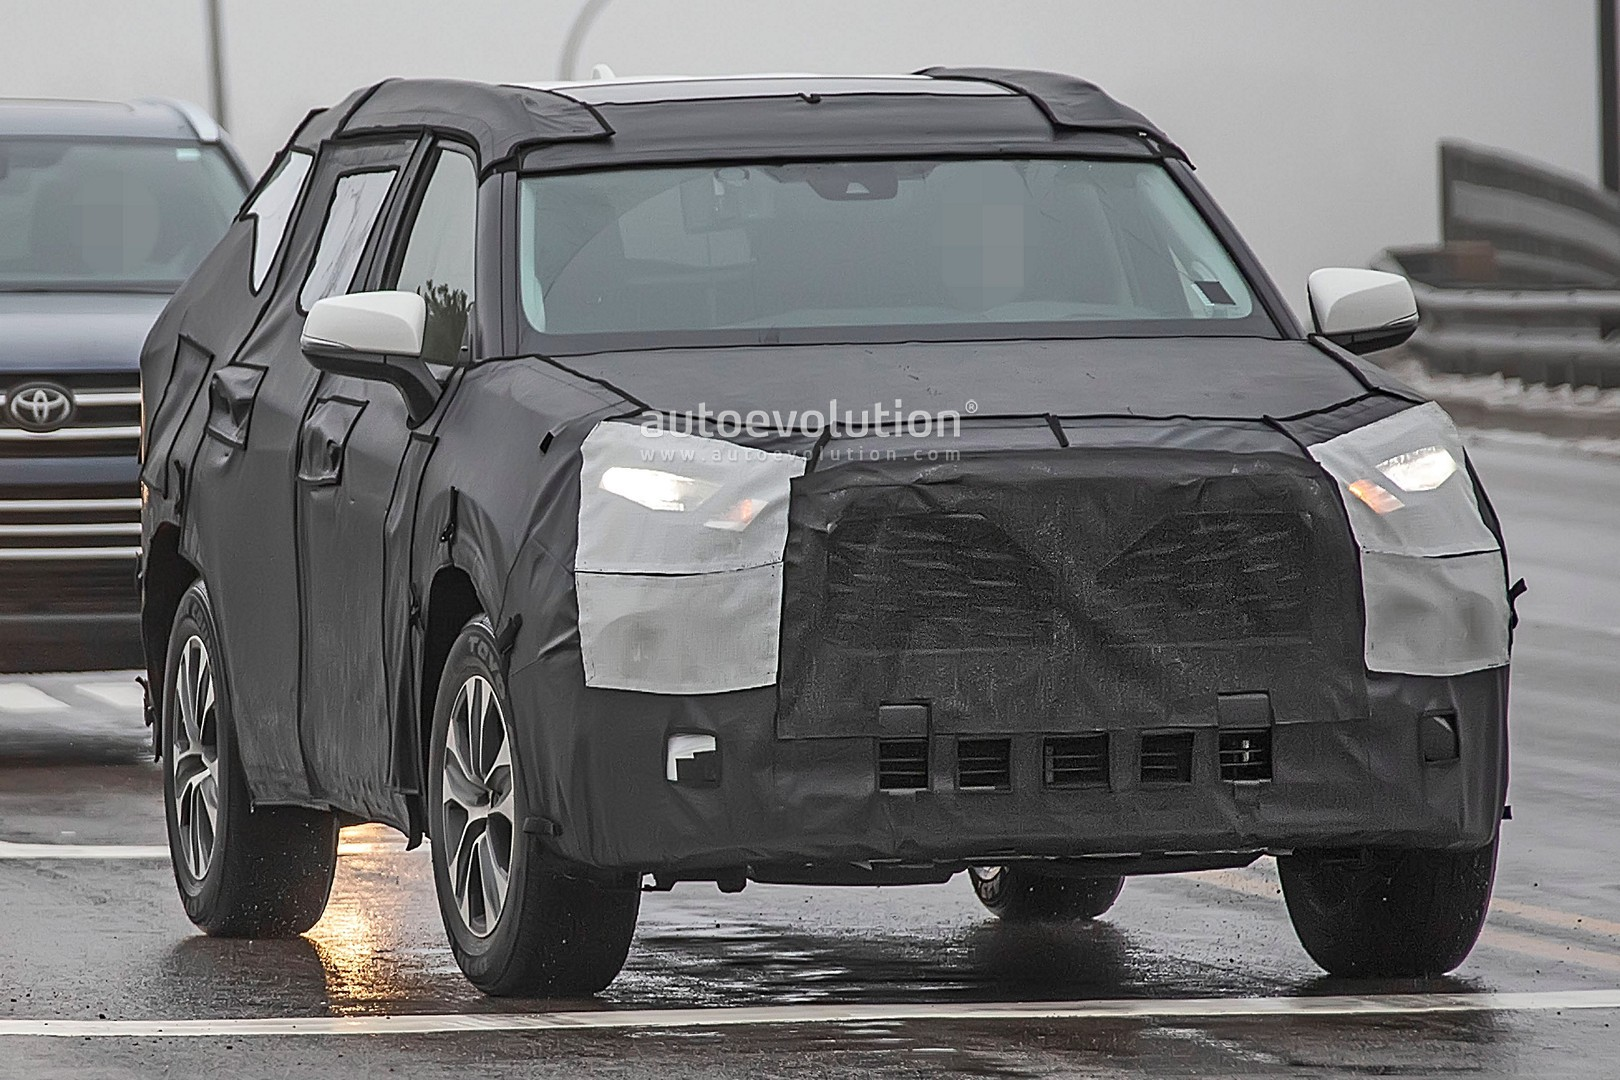 23 New 2020 Toyota Hilux Spy Shots Model